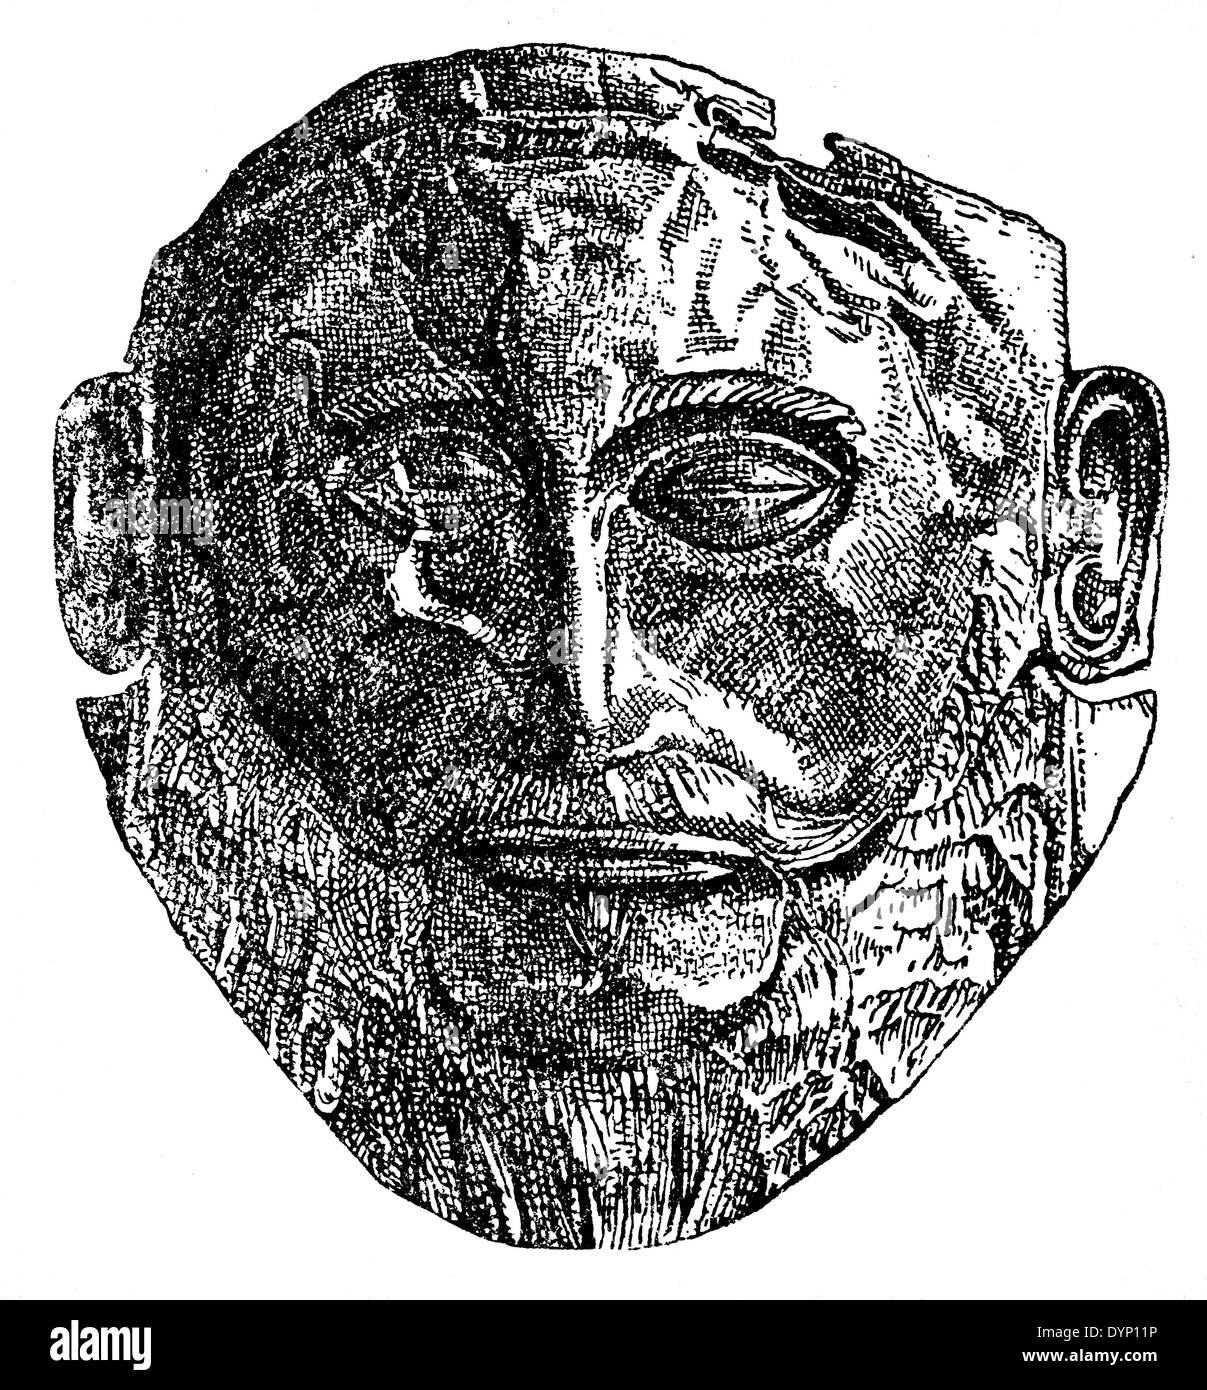 Ancient Greek Mycenaean funeral mask, 'Mask of Agamemnon', illustration from Soviet encyclopedia, 1938 - Stock Image